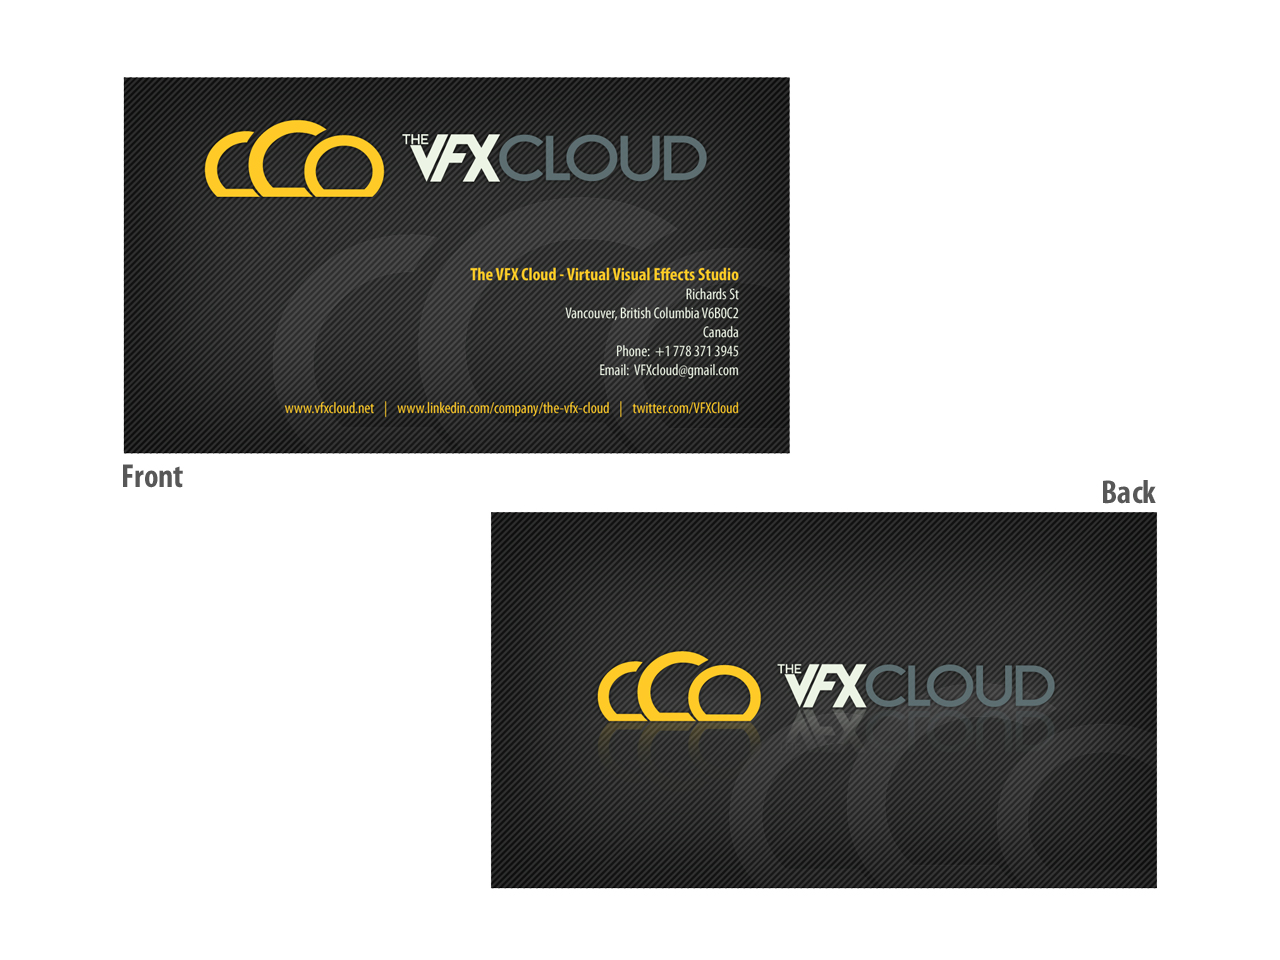 Elegant playful business business card design for the vfx cloud by business card design by totemic studio for the vfx cloud design 1536933 reheart Choice Image